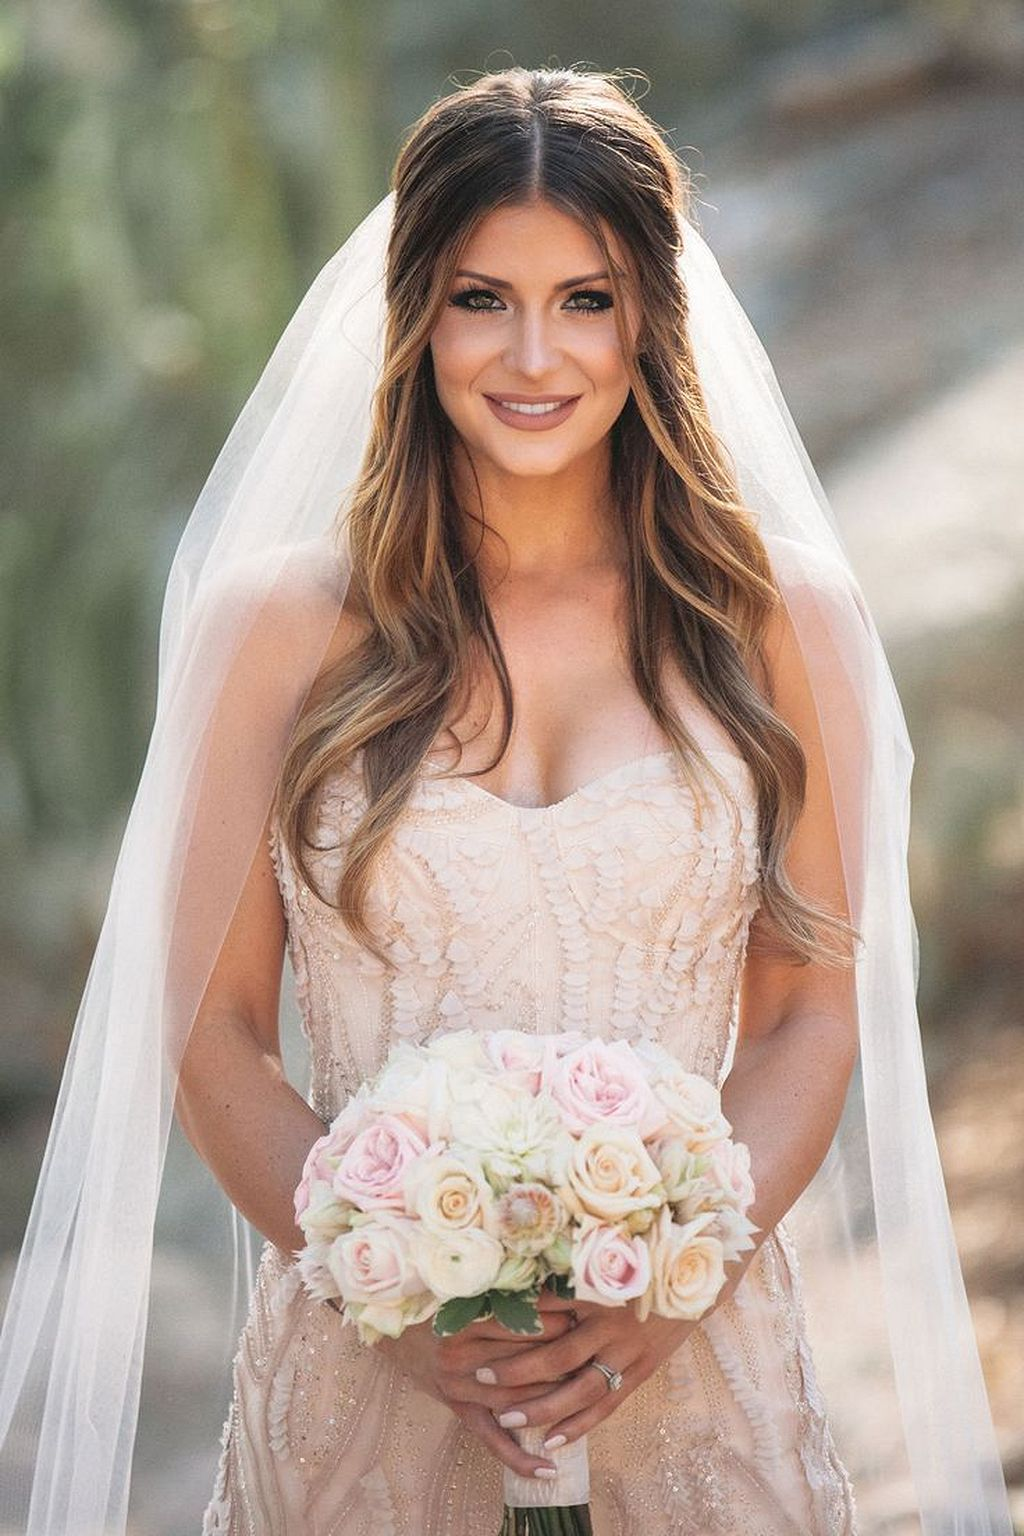 Wedding Hairstyles Down Captivating 40 Wedding Hair Down With Veil Ideas  Veil Wedding And Wedding Make Up